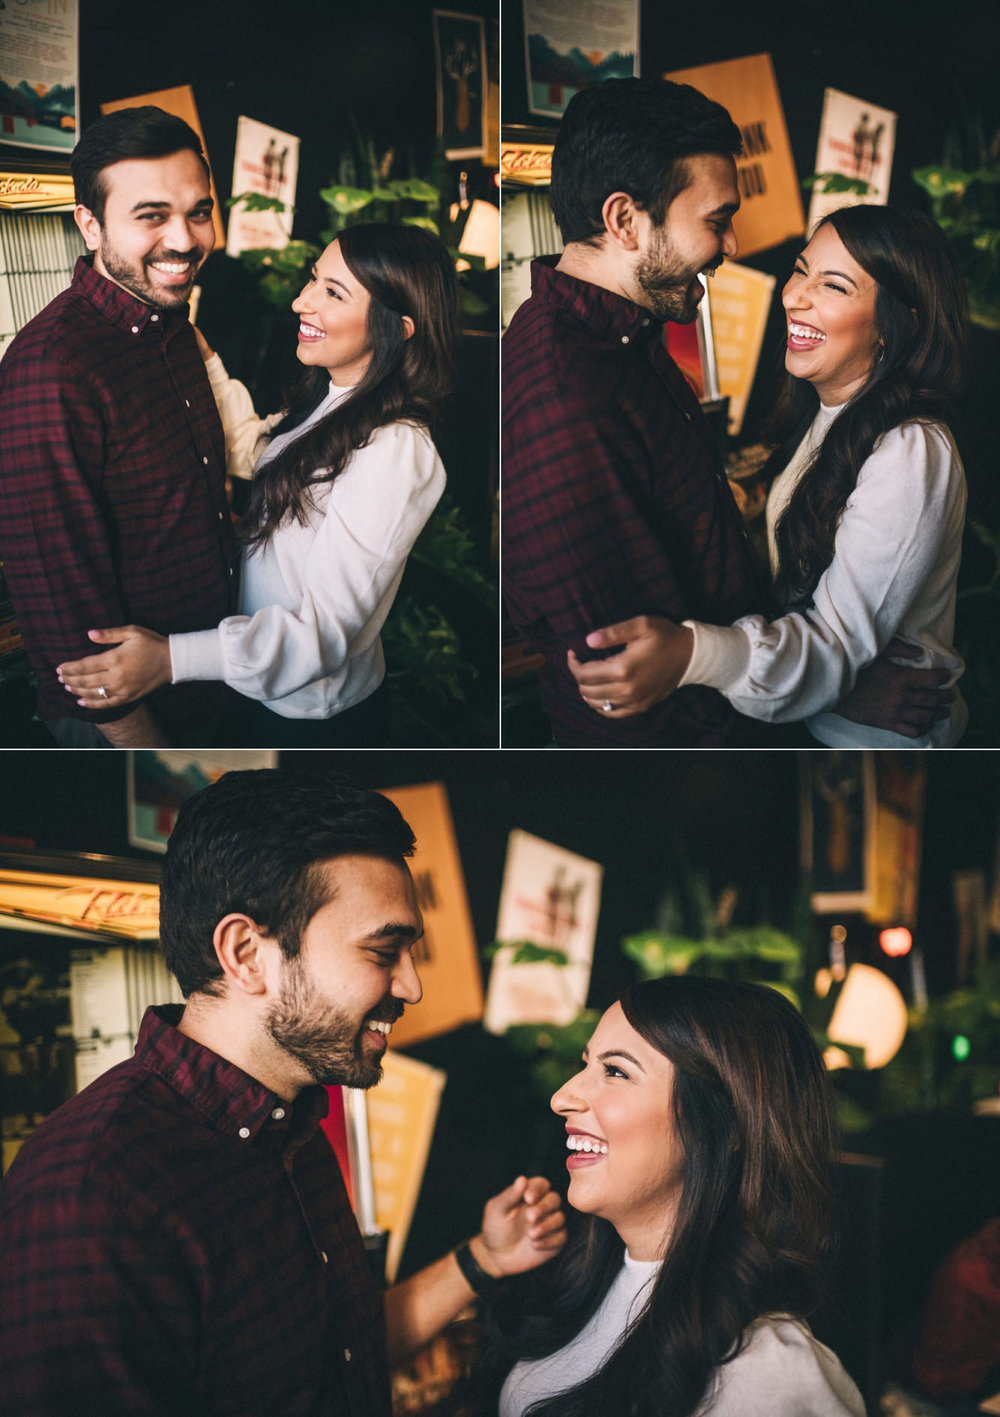 Nulu-Winter-Engagement-Session-By-Kentucky-Wedding-Photographer-Sarah-Katherine-Davis-Photography-2.jpg